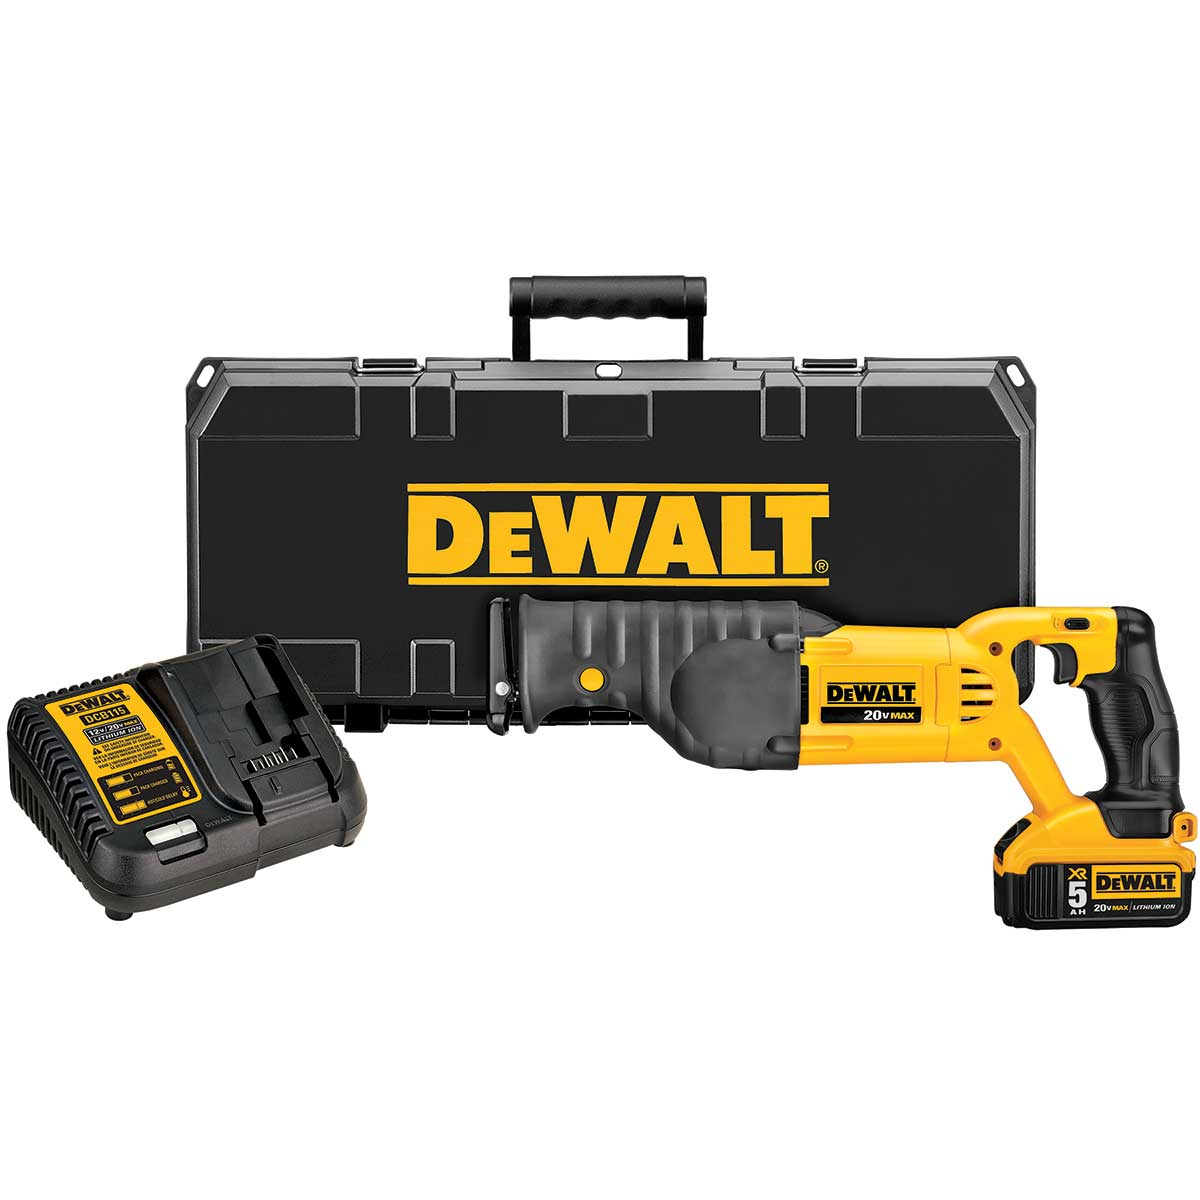 DEWALT 20V MAX Lithium Ion Reciprocating Saw Kit (5.0 Ah)